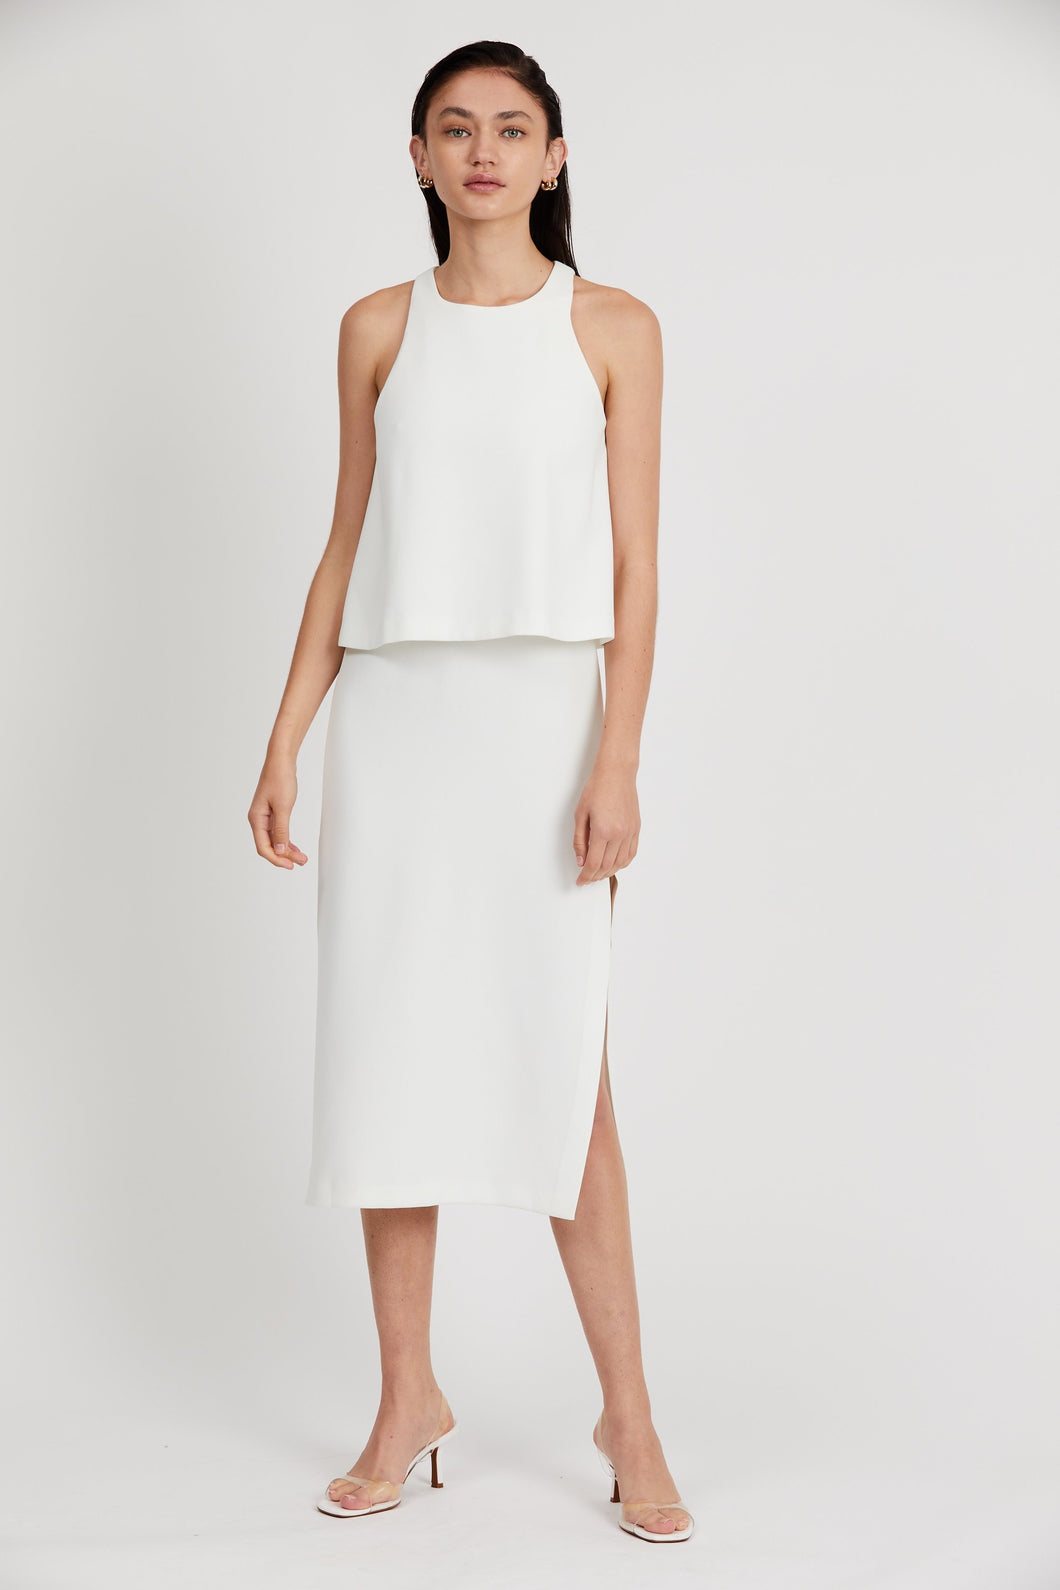 Third Form Double Up High Neck Dress